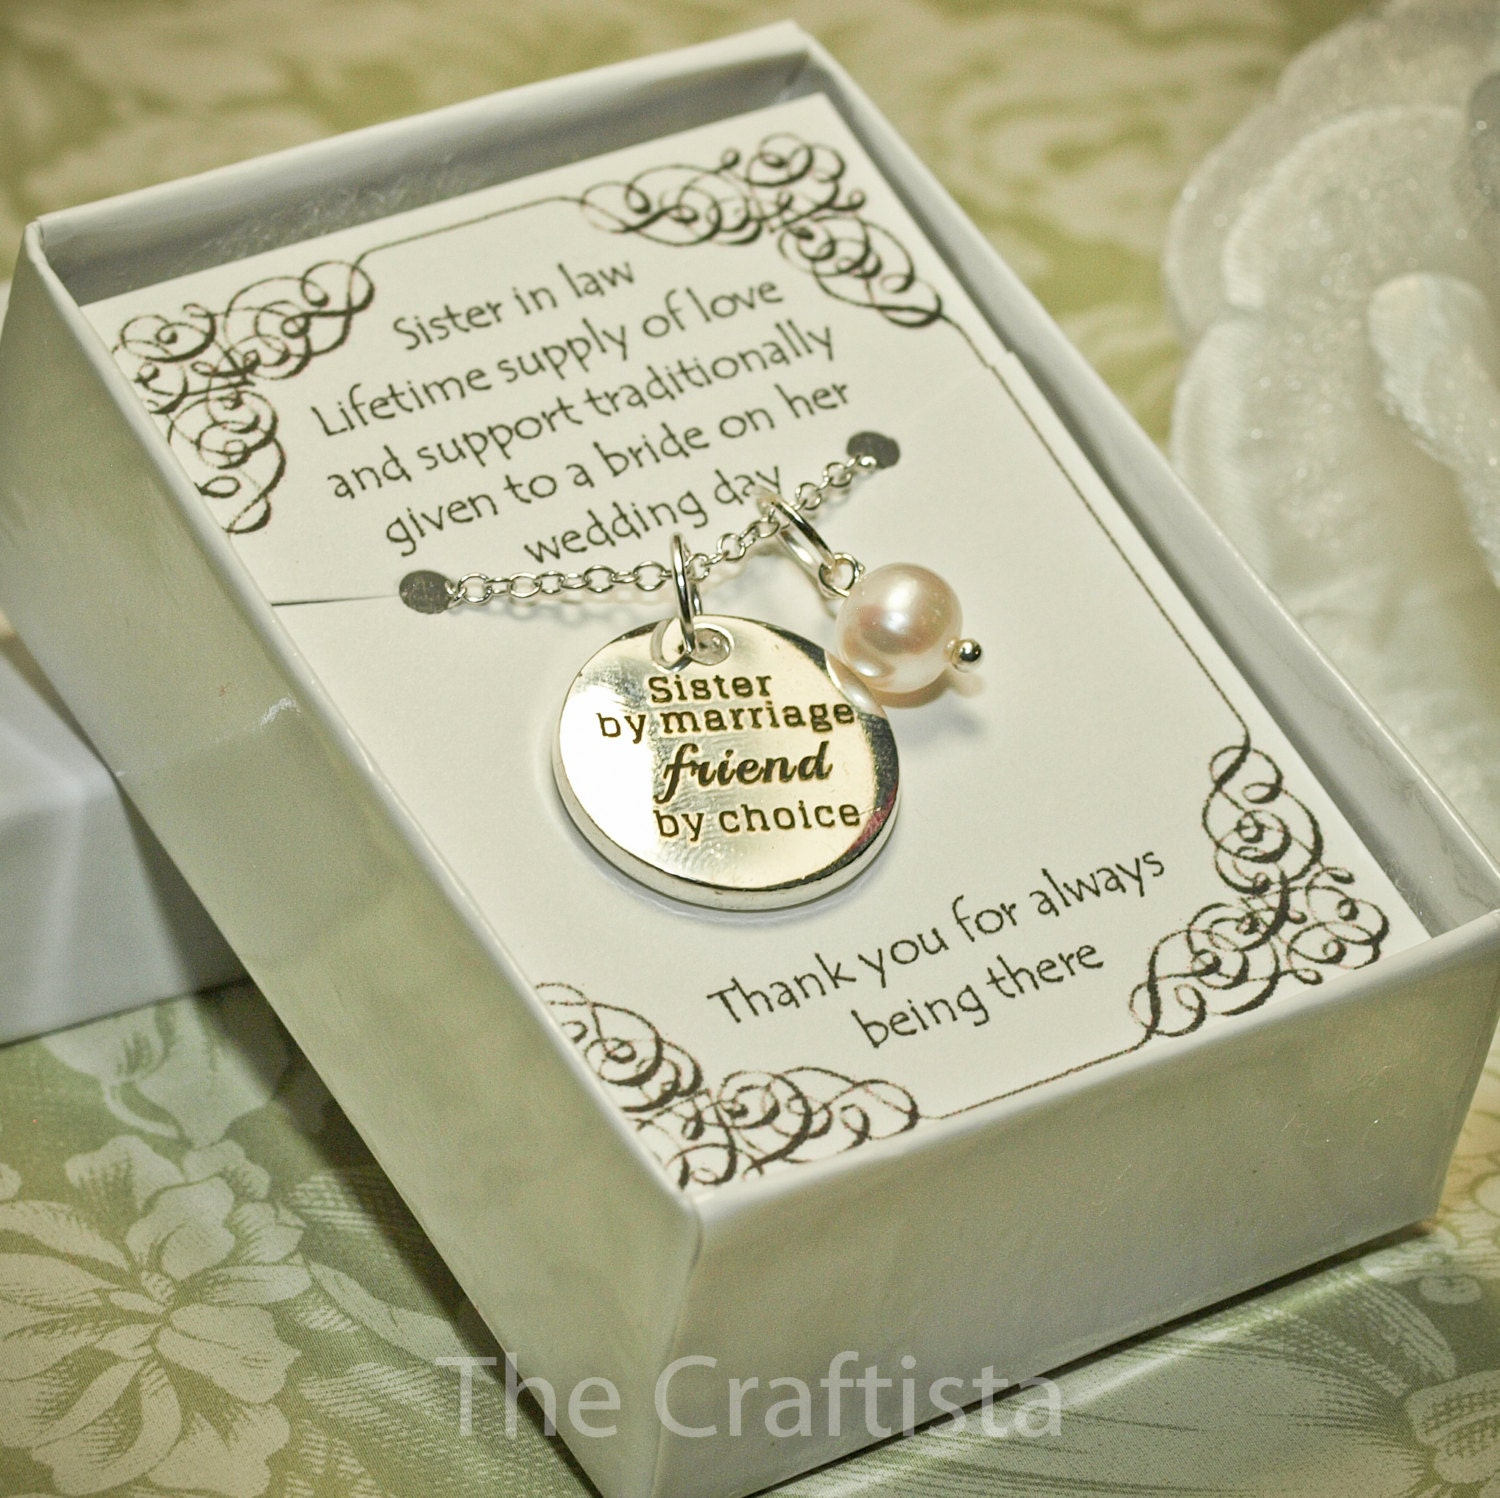 Sister Of The Groom Necklace SIL Sister-in-law Necklace